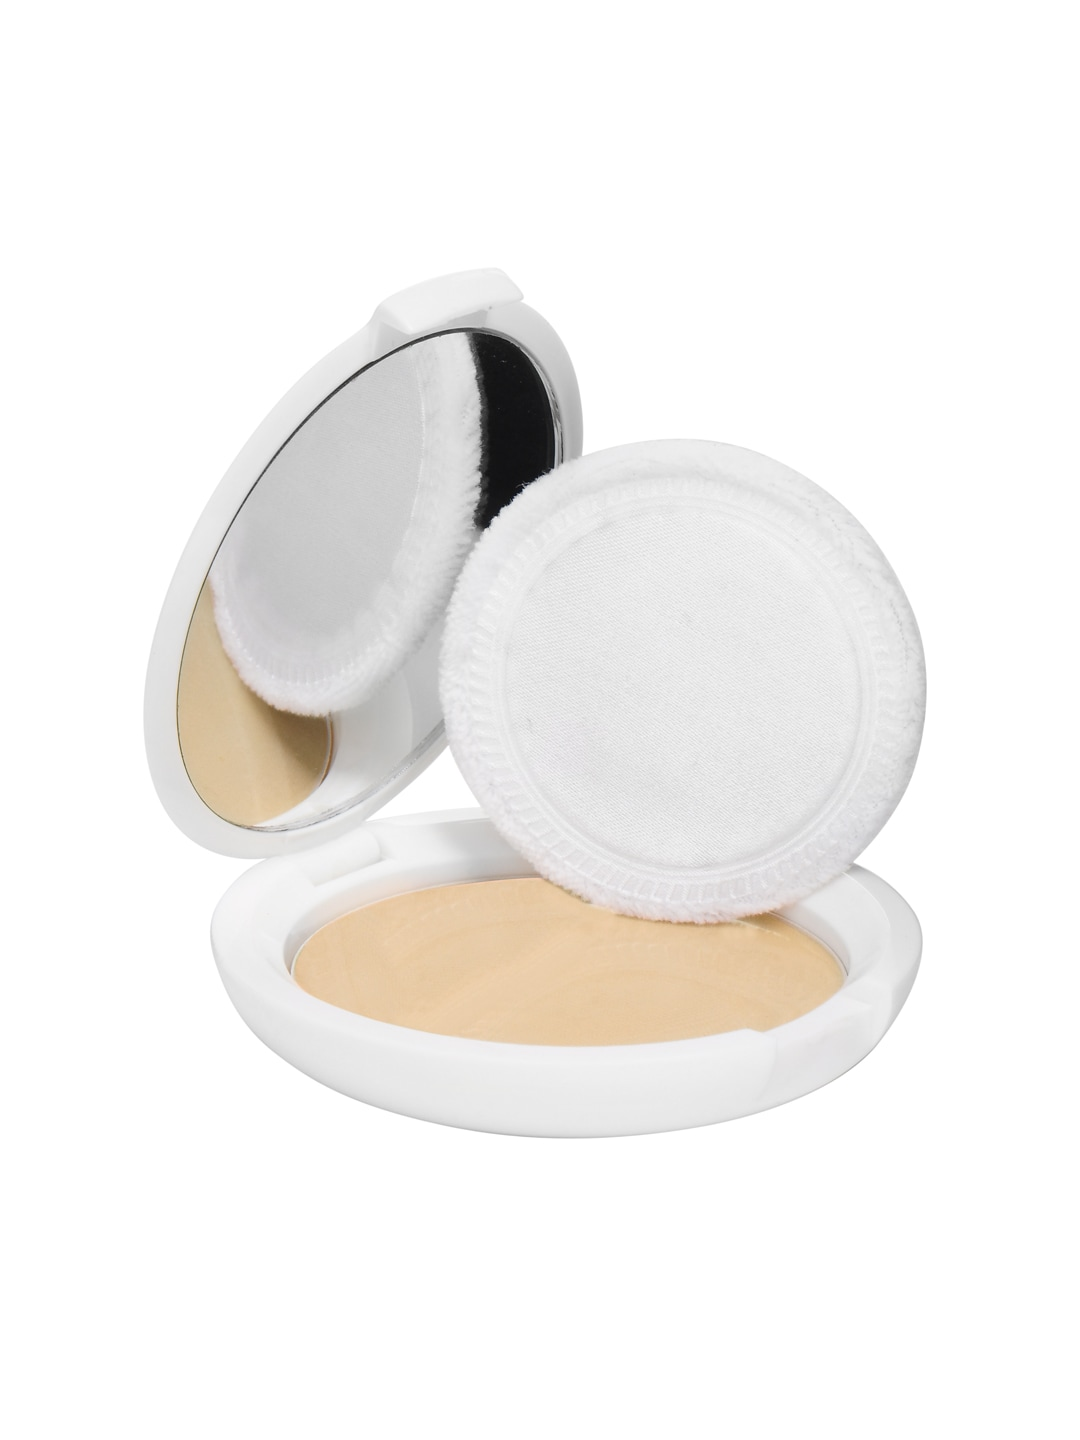 ColorBar Radiant White UV Fairness Just Beige Compact 004 image